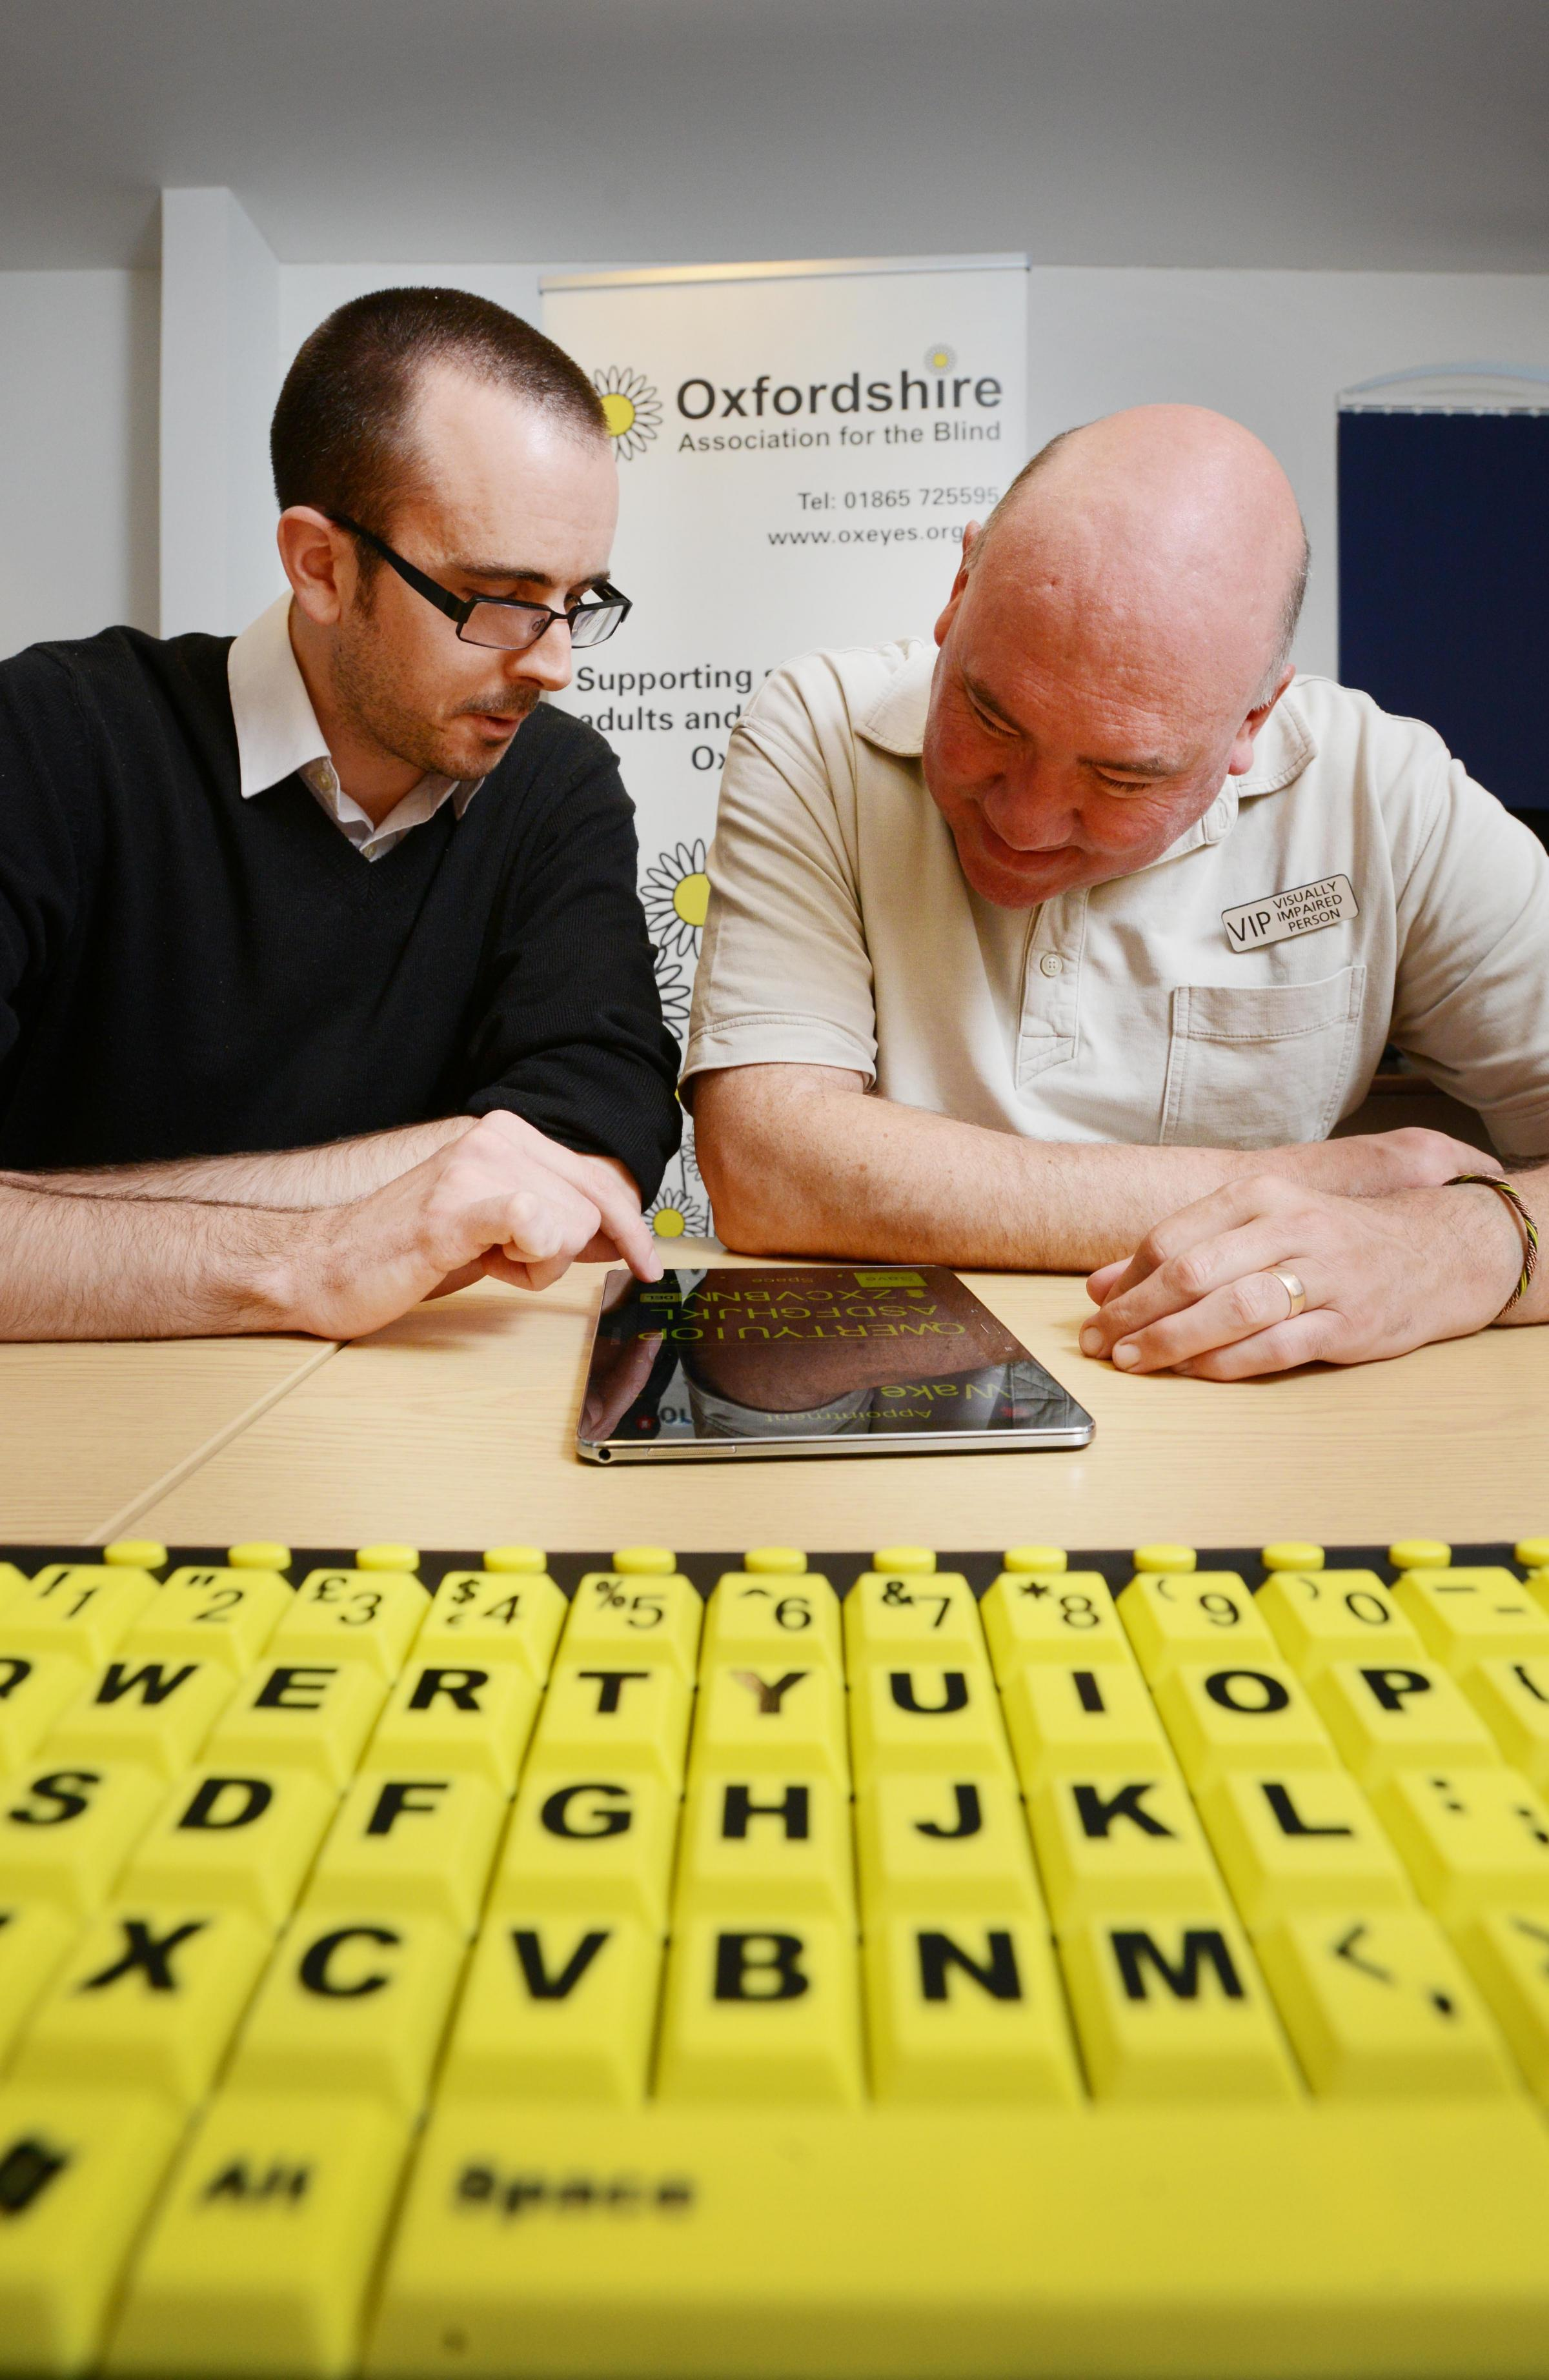 SUPPRORT: Mark Upton and Guy Lawfull give IT training to visually impaired clients Picture: Richard Cave